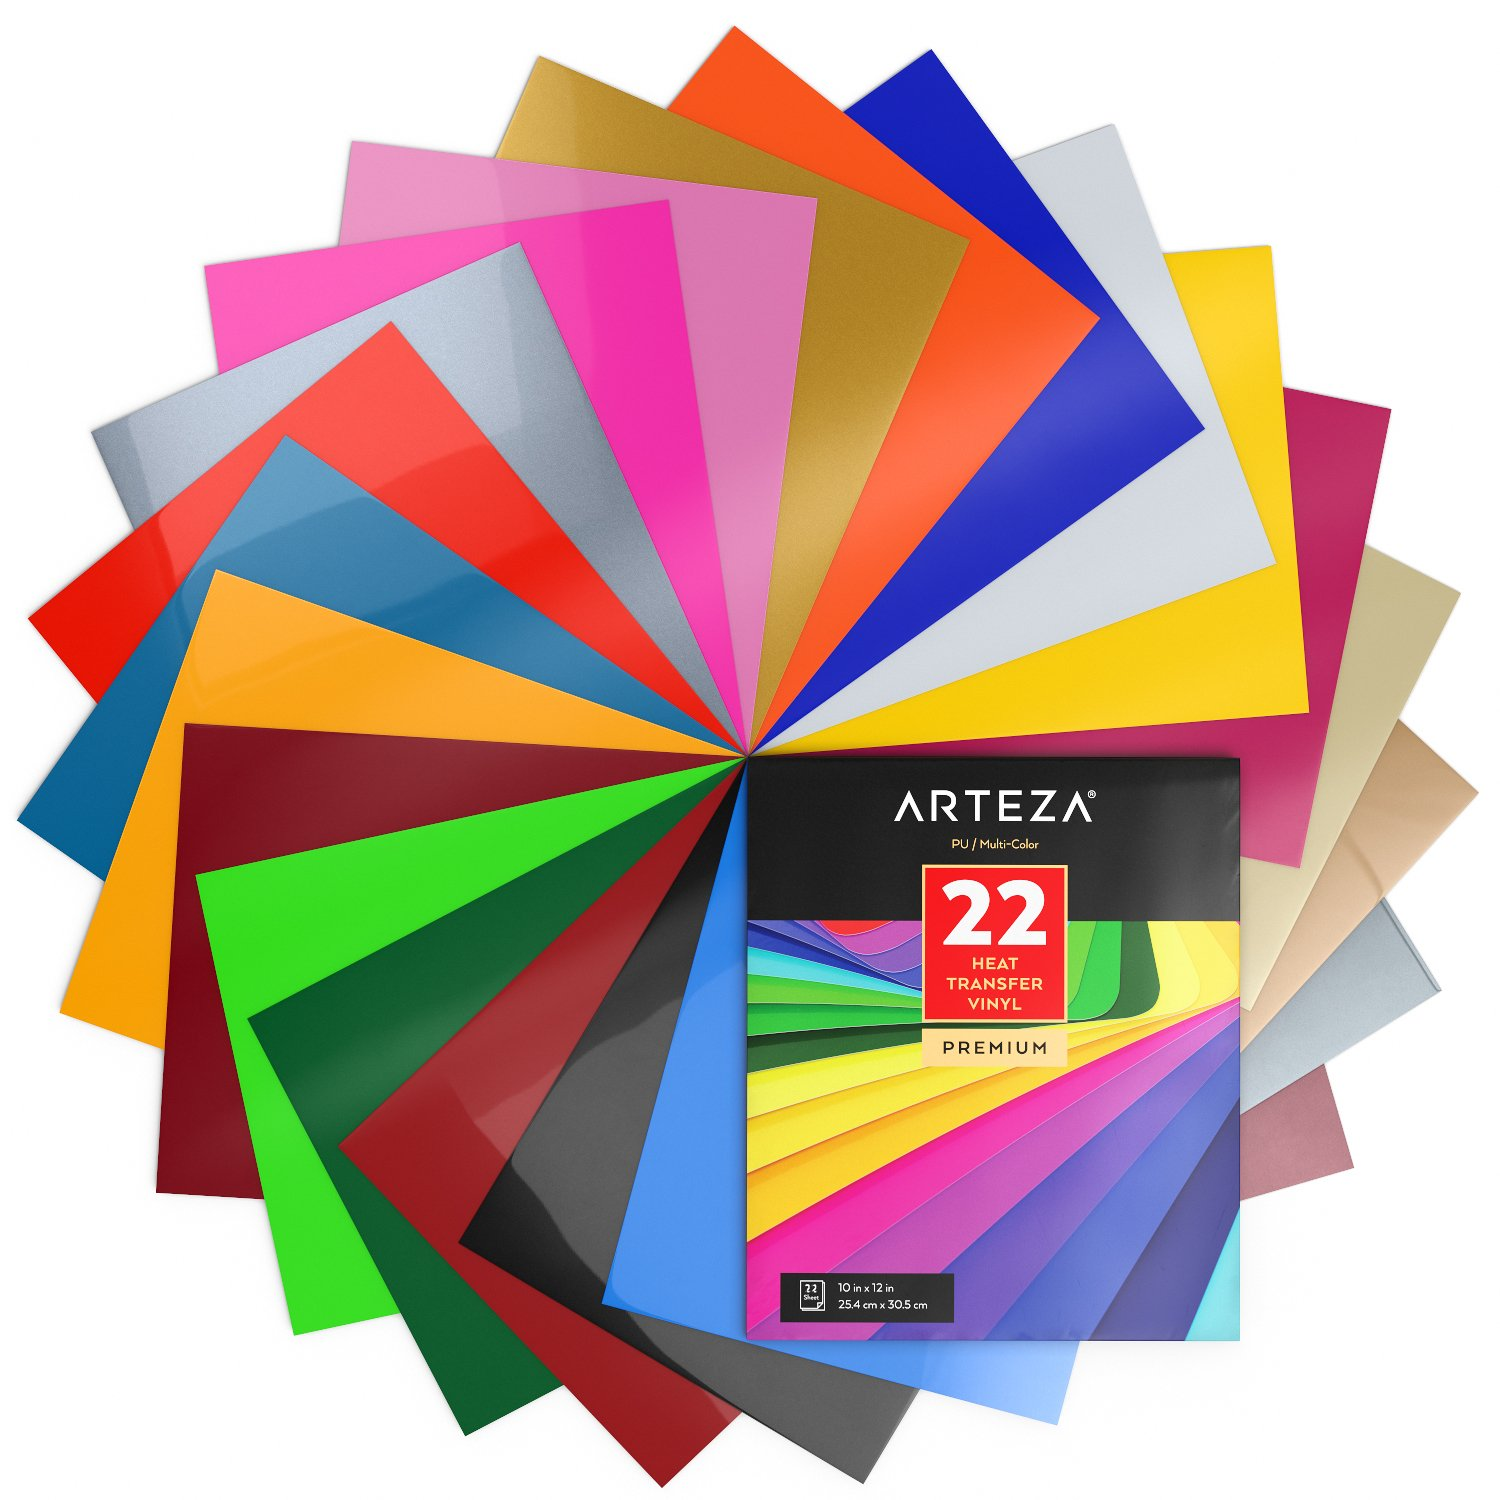 """ARTEZA Heat Transfer Vinyl Set, 22 Flexible HTV Sheets, 10"""" x 12"""" Each, Super Sturdy & Easy to Weed, 100% Safe & Nontoxic, Use with Any Craft Cutting Machine, Assorted Brilliant Colors, Boxed"""